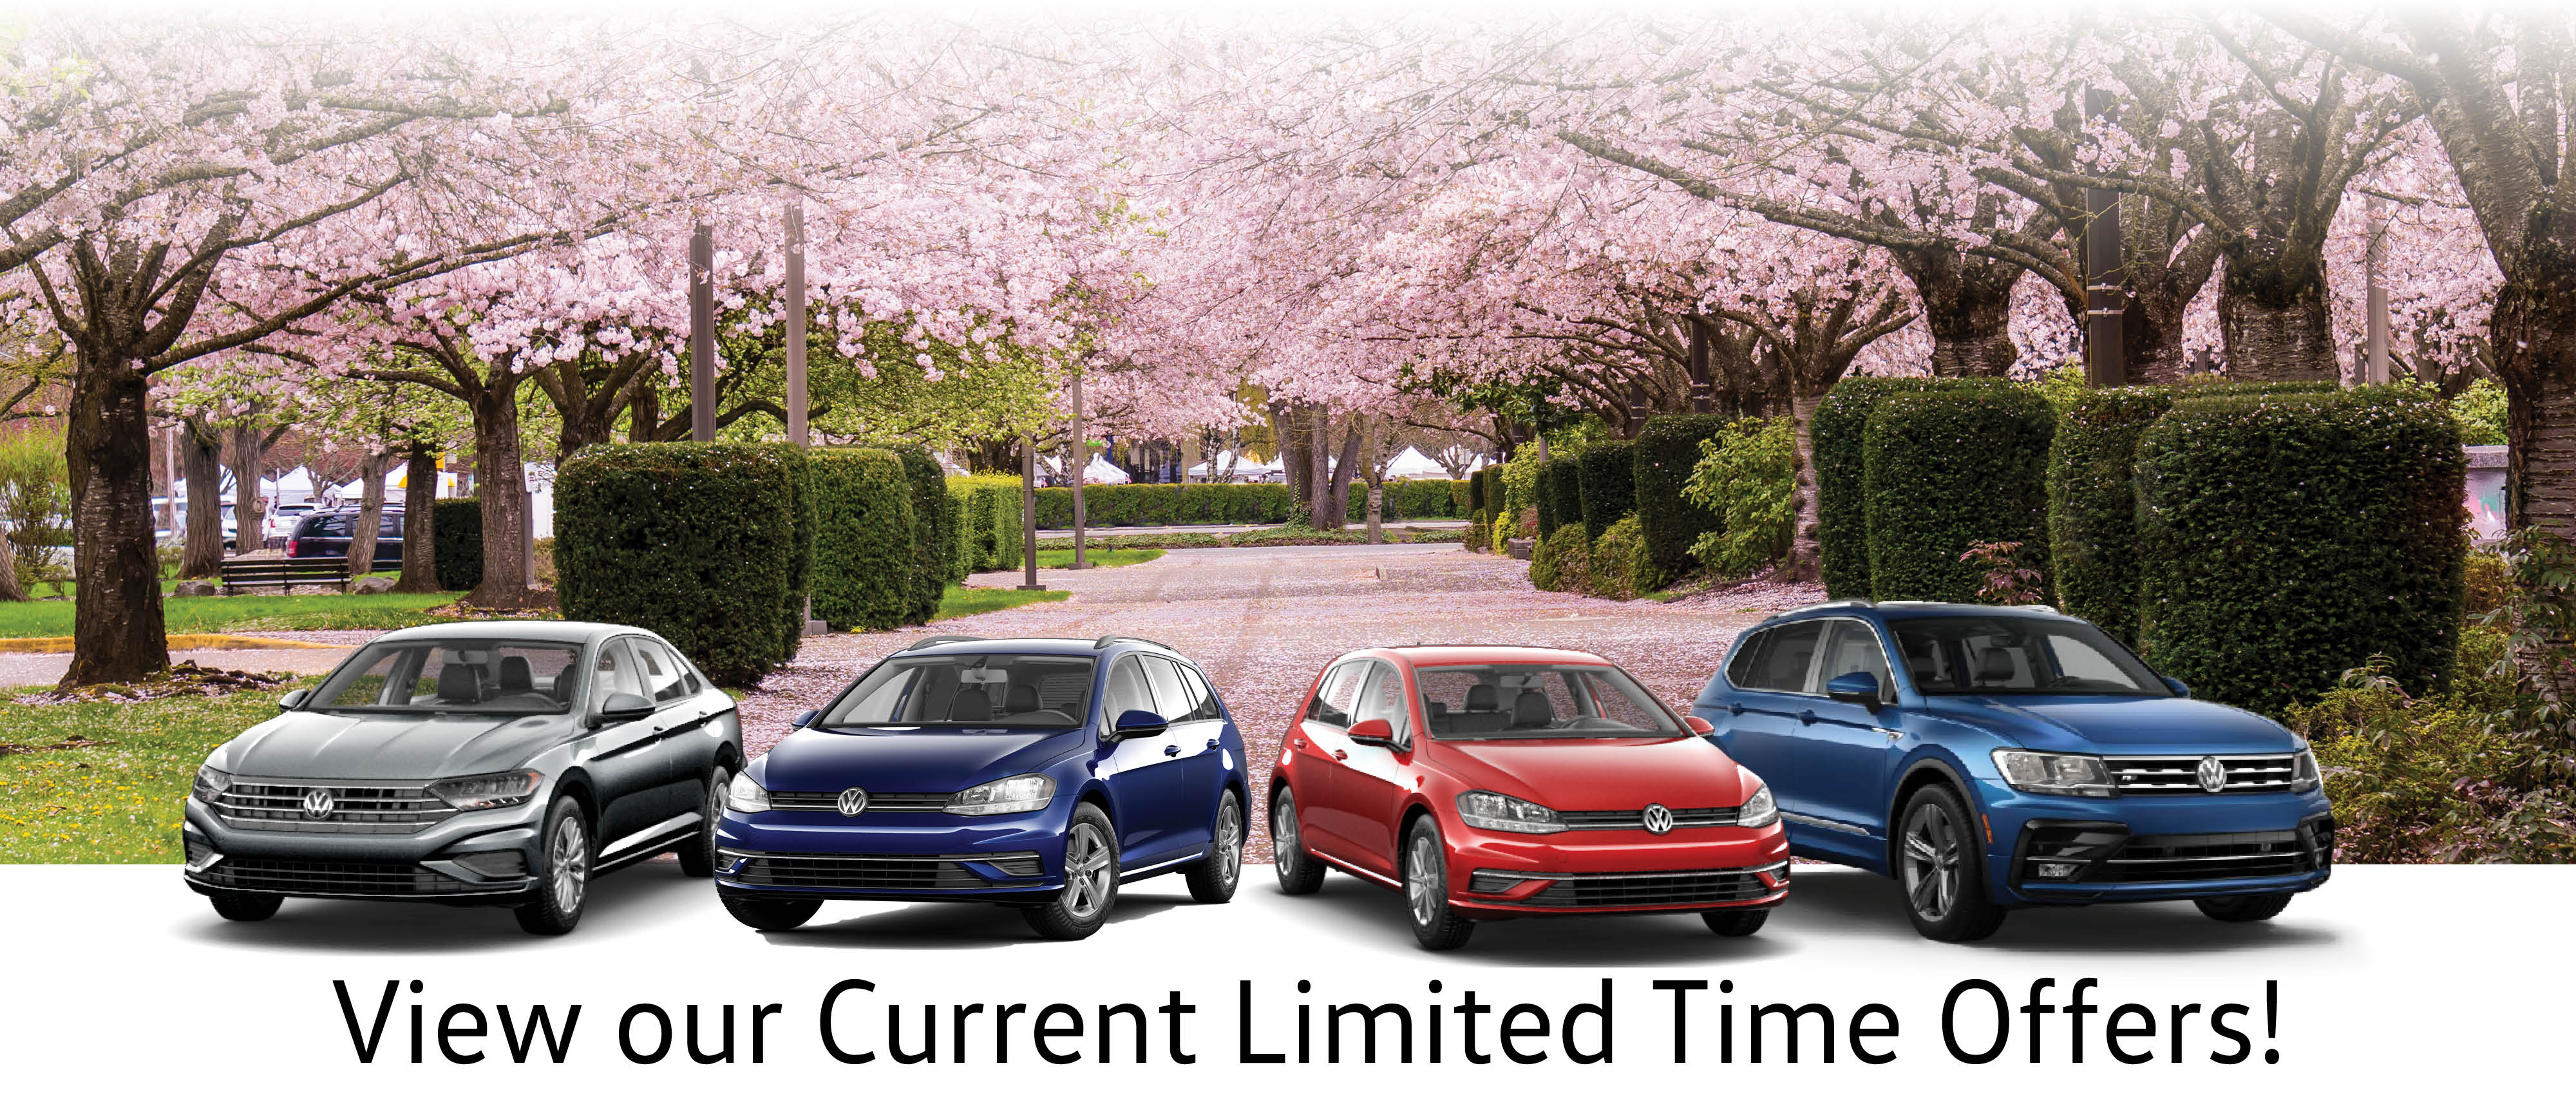 Milton Volkswagen Current Limited Time Offers